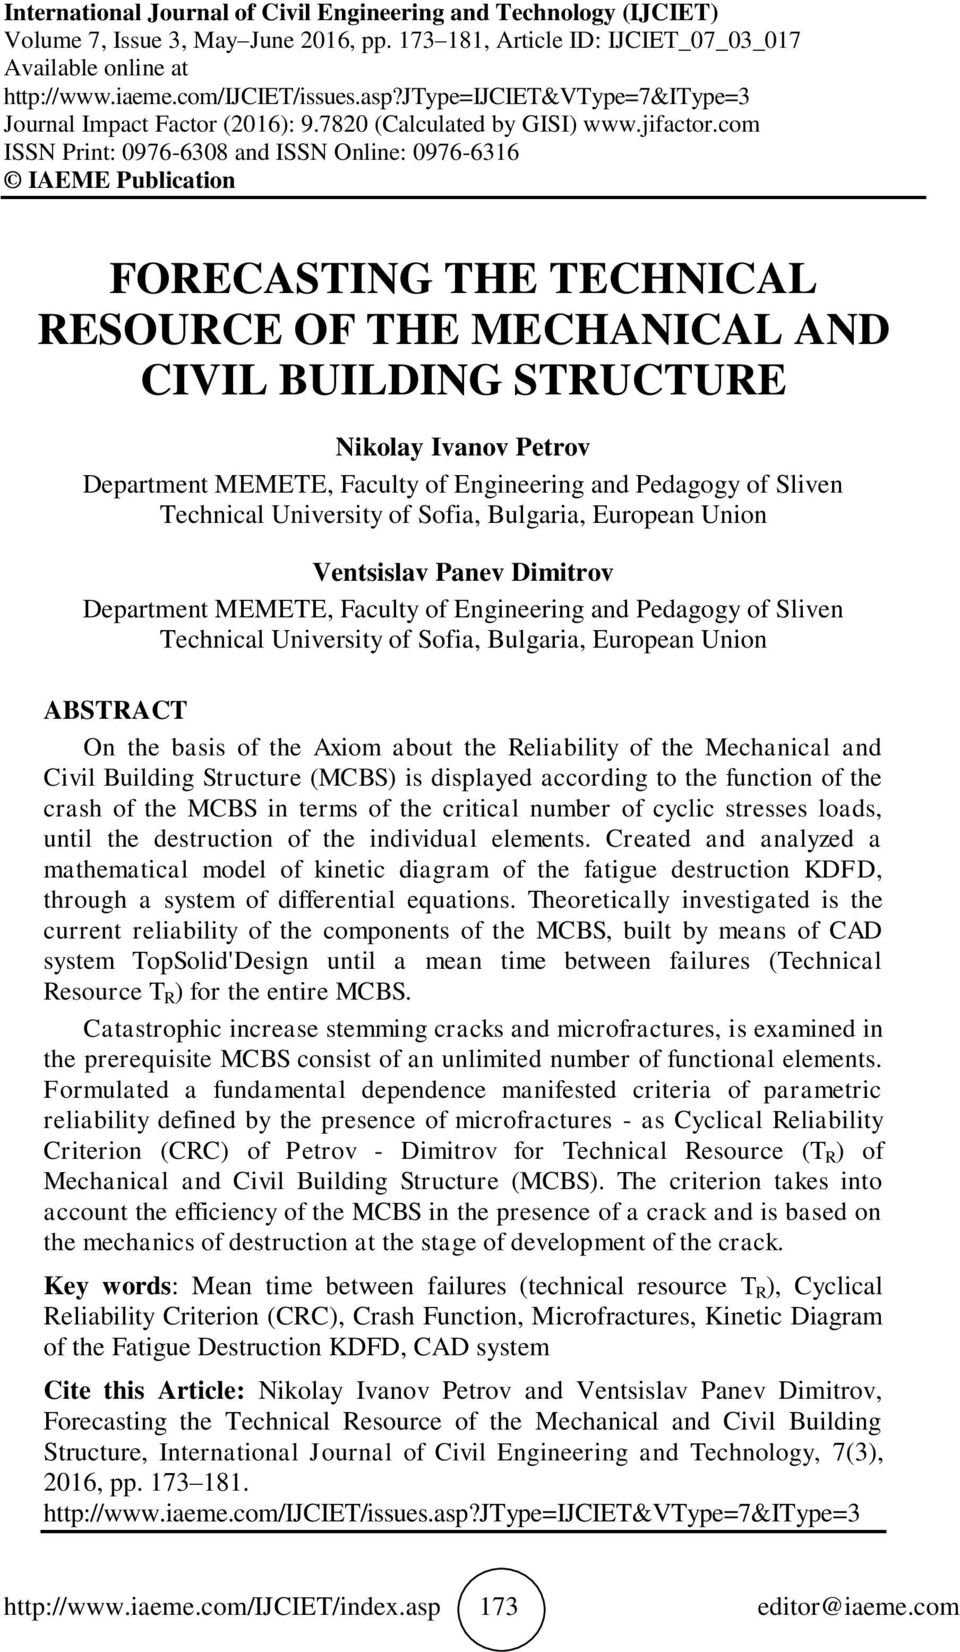 com ISS Print: 976-638 and ISS Online: 976-636 IAEME Publication FORECASTIG THE TECHICAL RESOURCE OF THE MECHAICAL AD CIVIL BUILDIG STRUCTURE ikolay Ivanov Petrov Department MEMETE, Faculty of